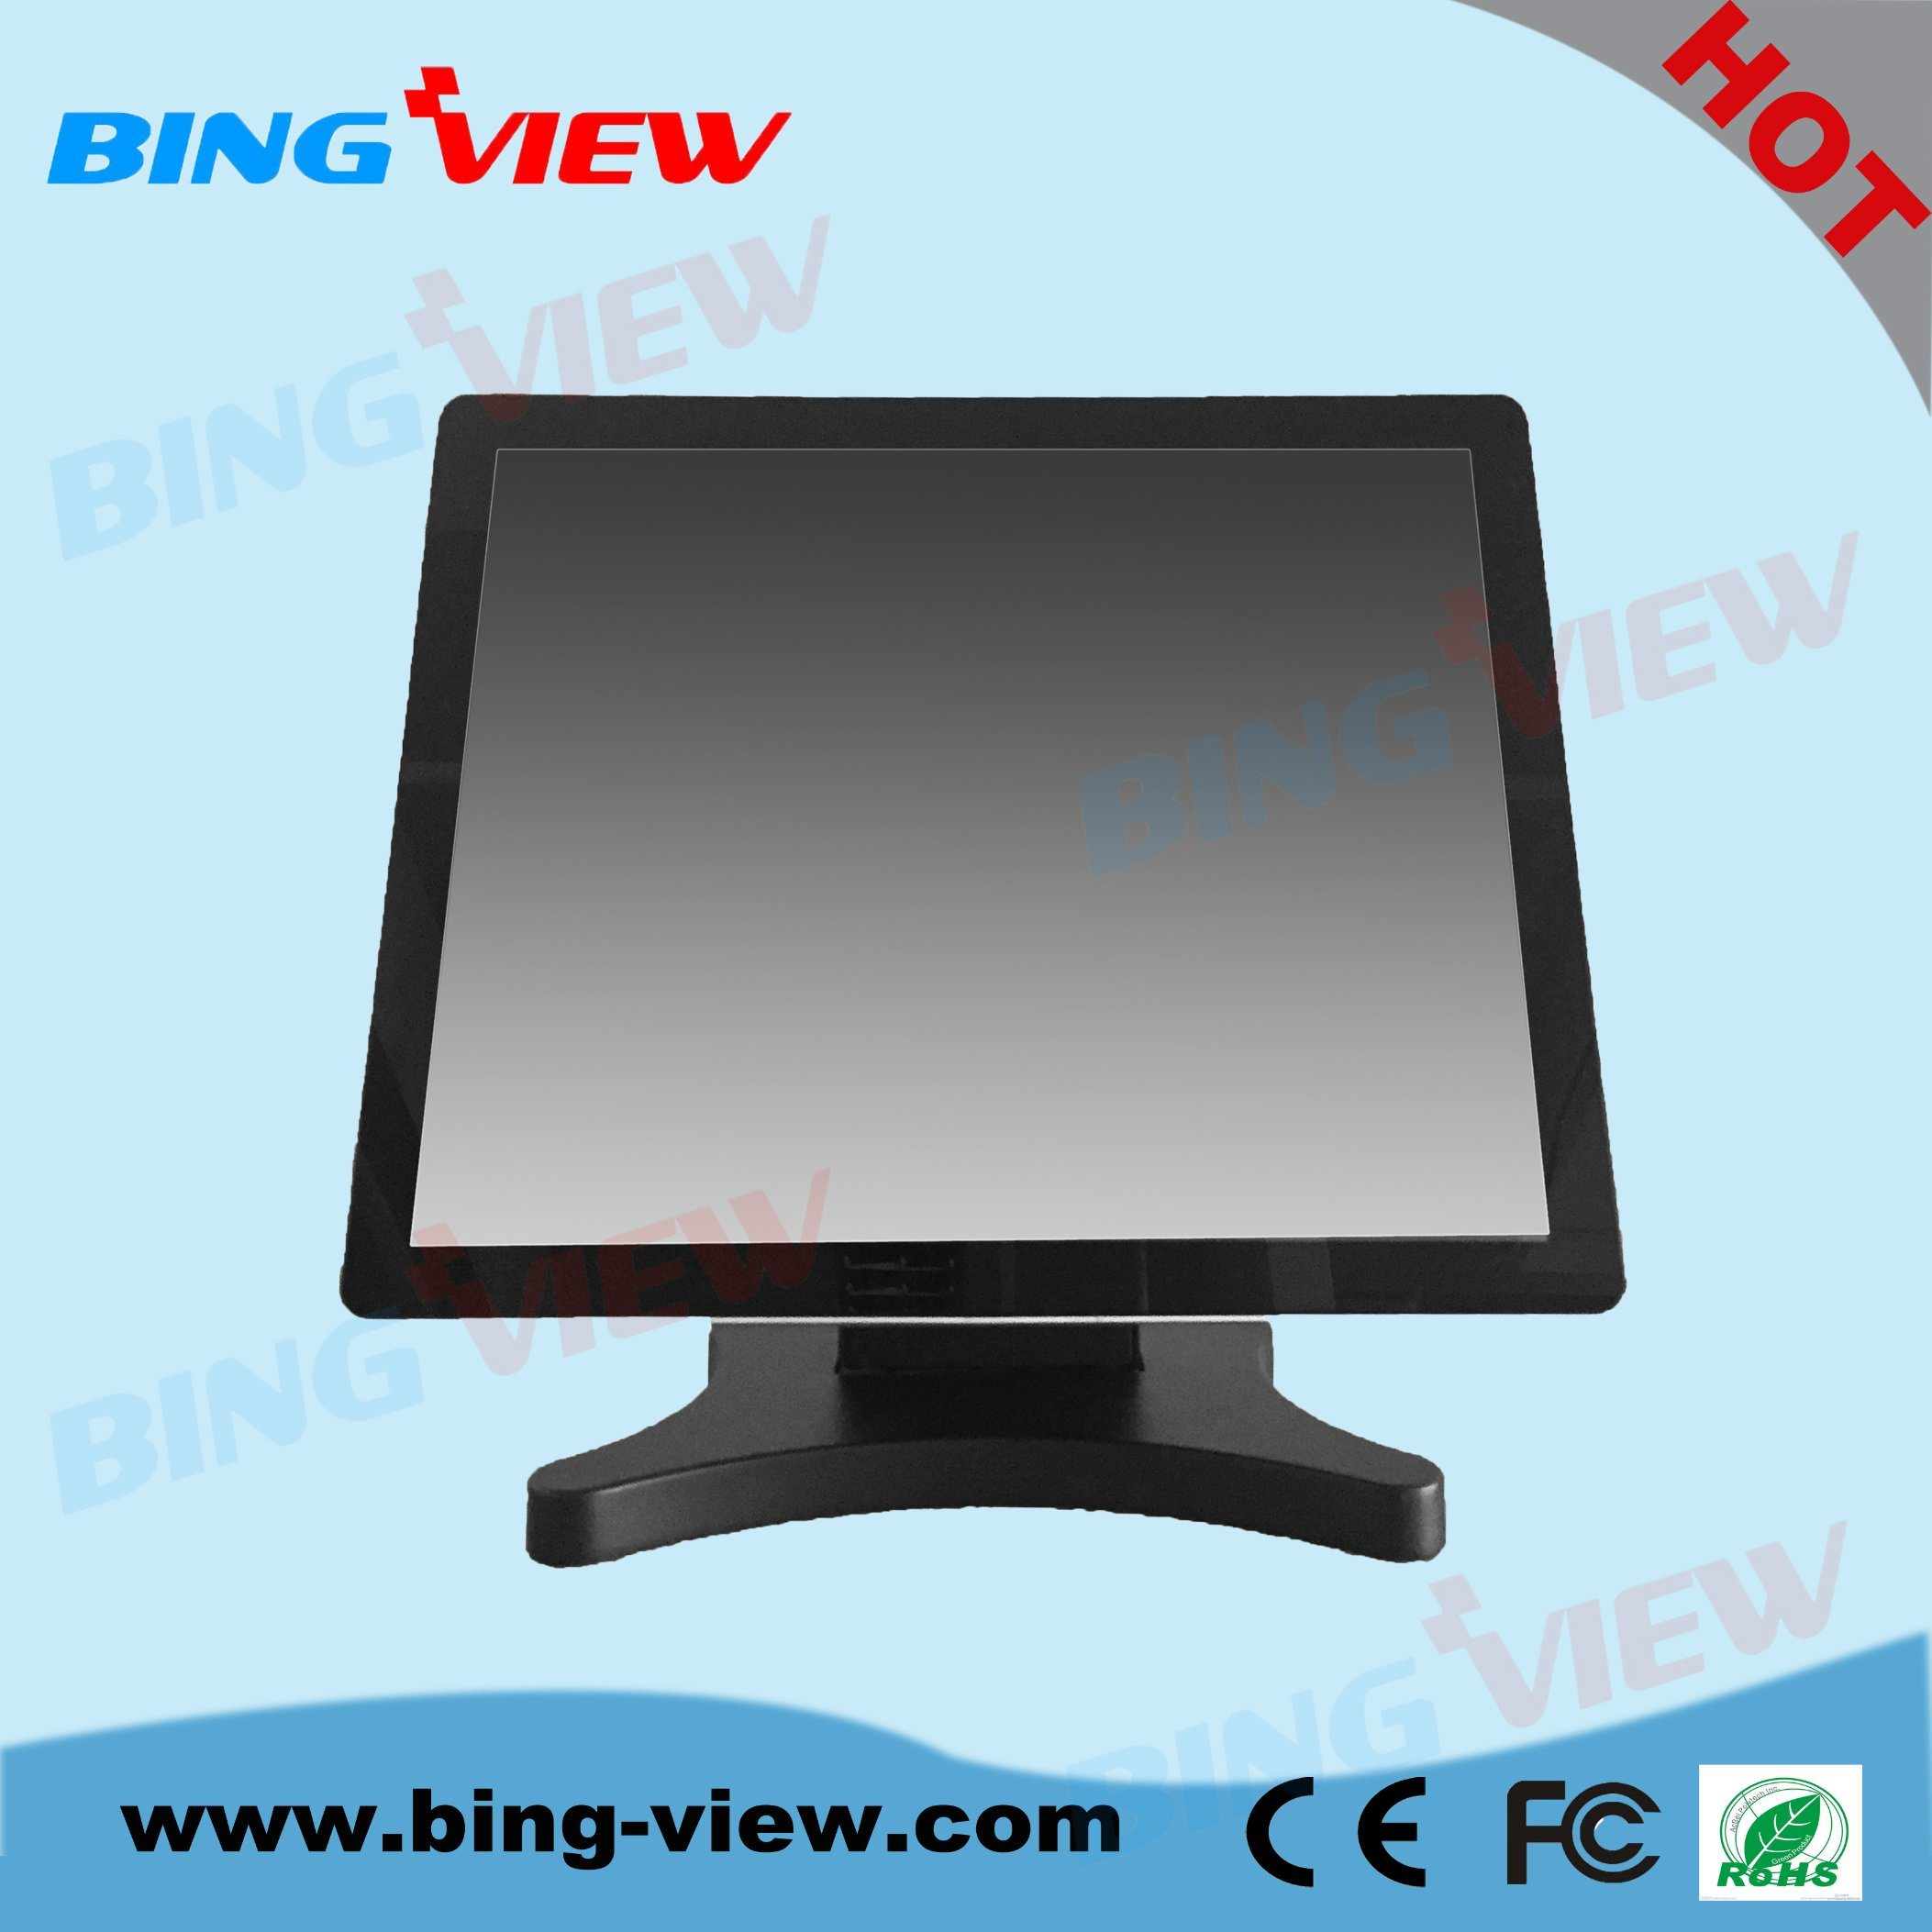 "4: 3 19"" True Flat Design POS Desktop Multiple Touch Screen Monitor"